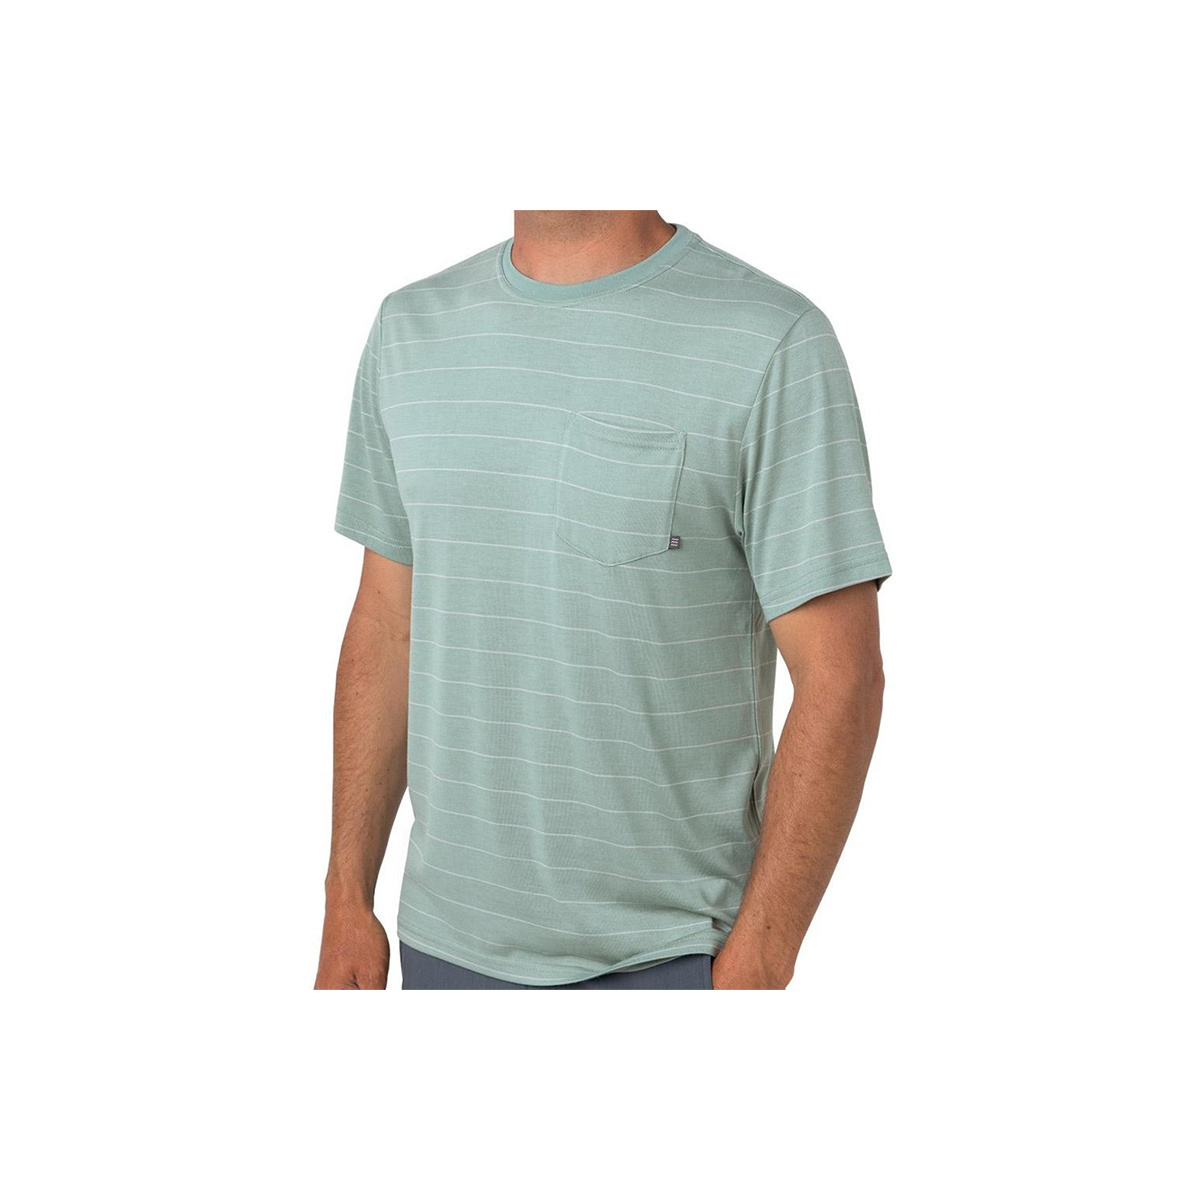 Free Fly Apparel Men's Bamboo Channel Pocket Tee